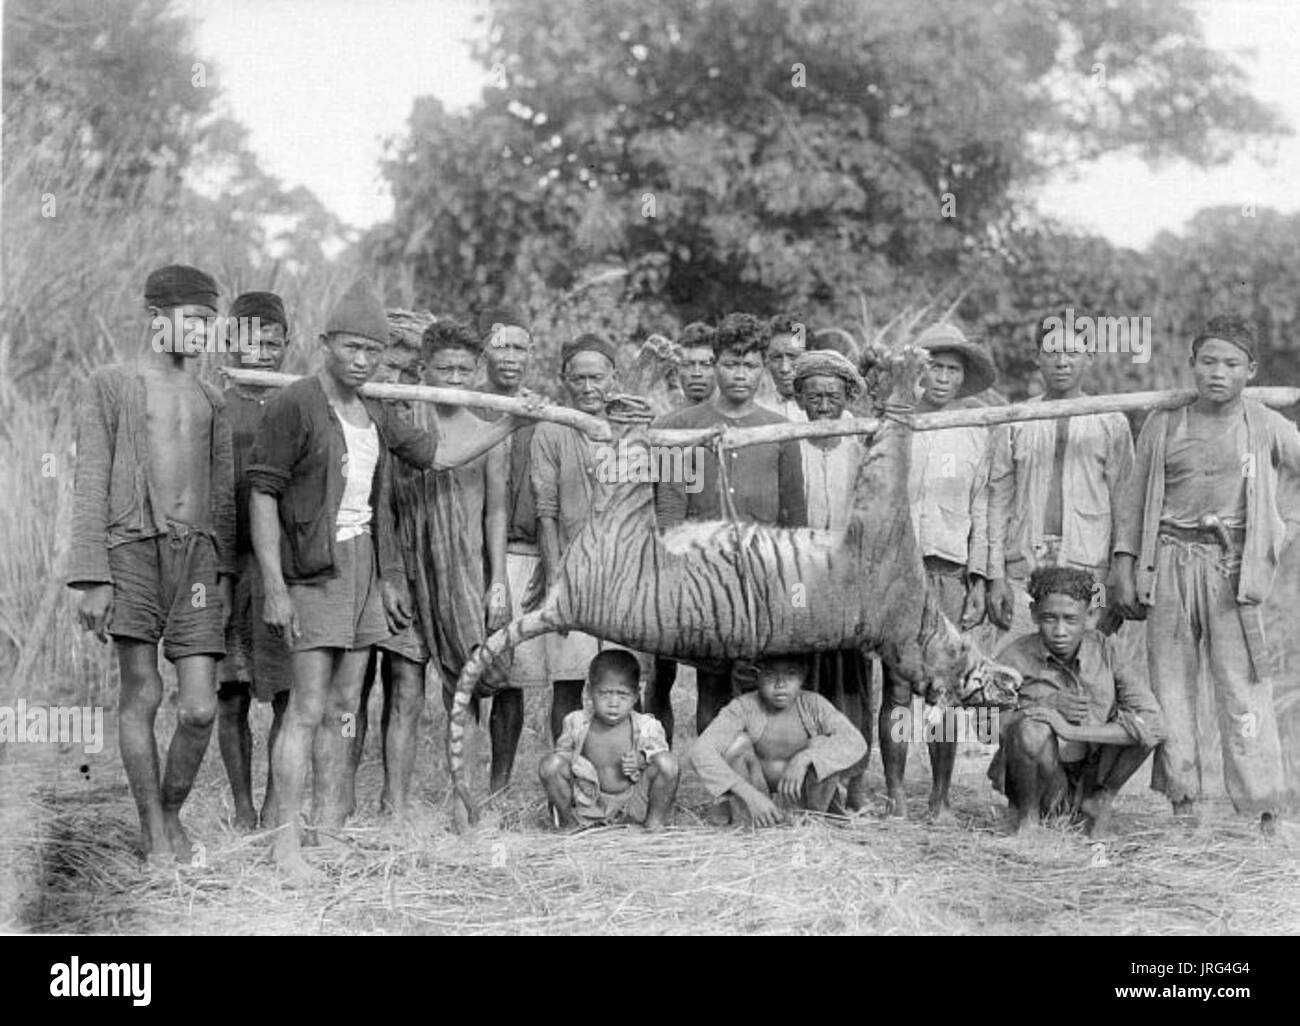 A hunting party poses with a killed Javan tiger, 1941 Stock Photo